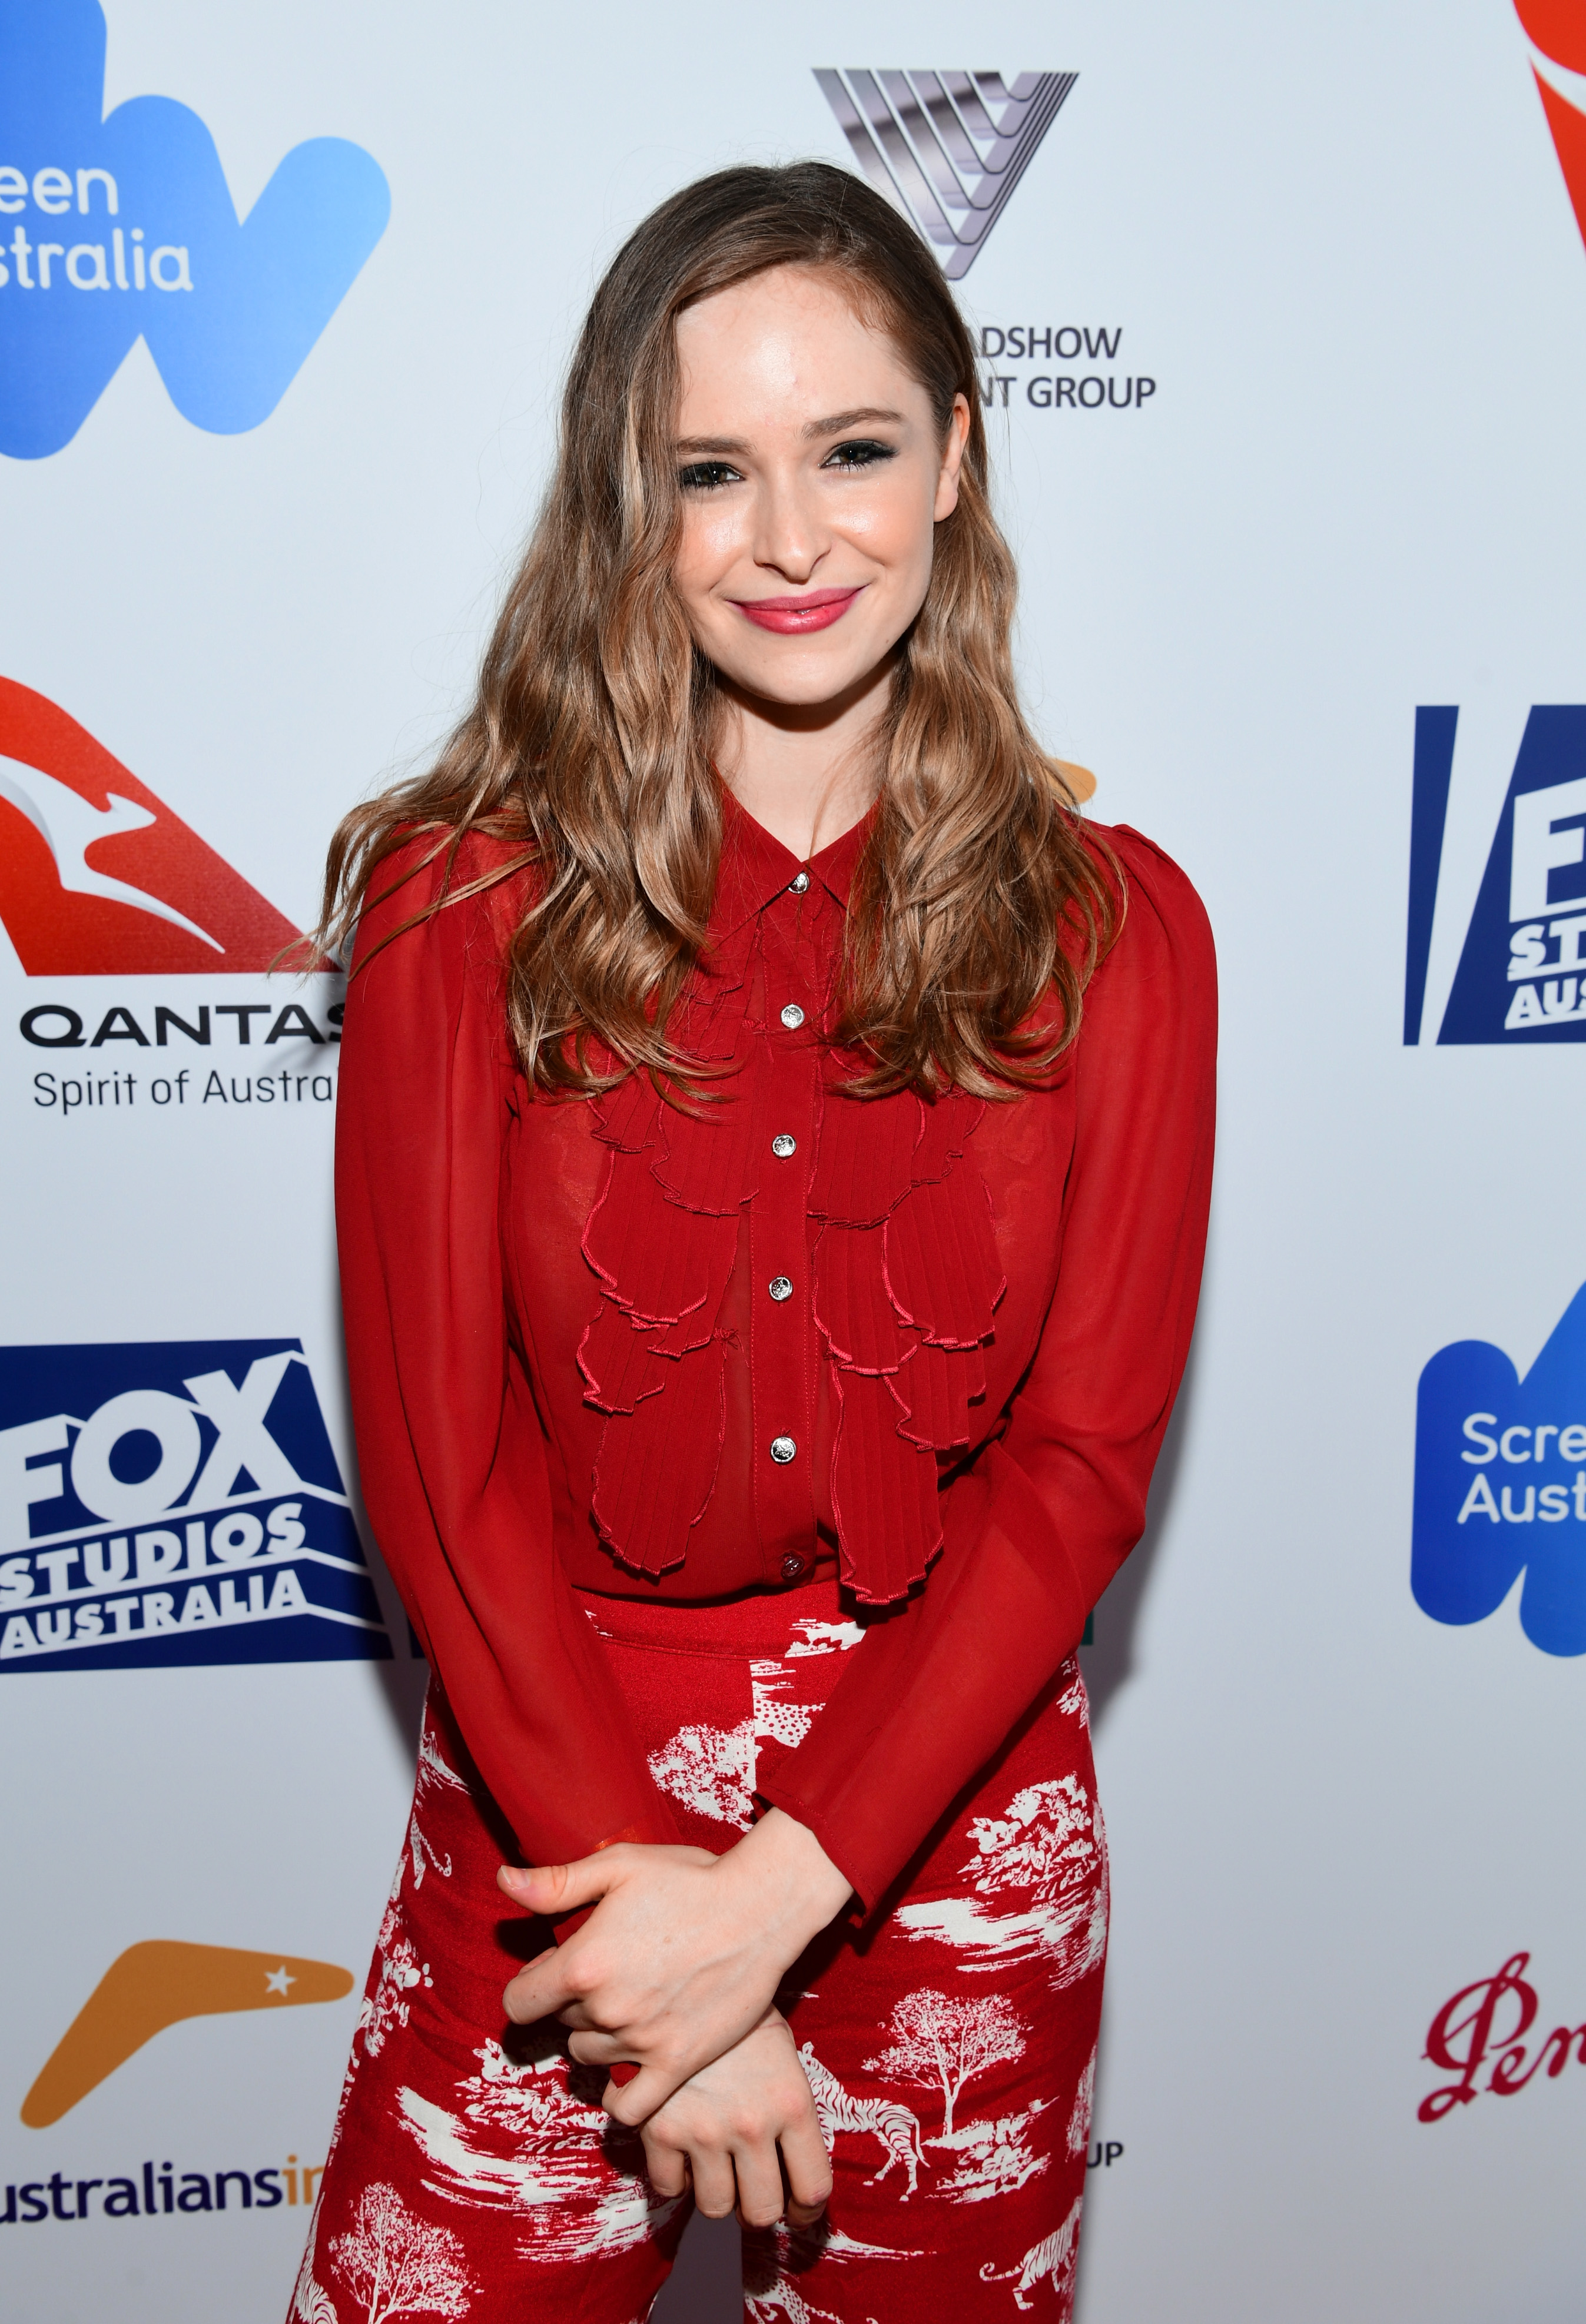 Ashleigh Cummings attends the 6th Annual Australians in Film Award & Benefit Dinner at NeueHouse Hollywood on October 18, 2017, in Los Angeles, California (Getty Images)